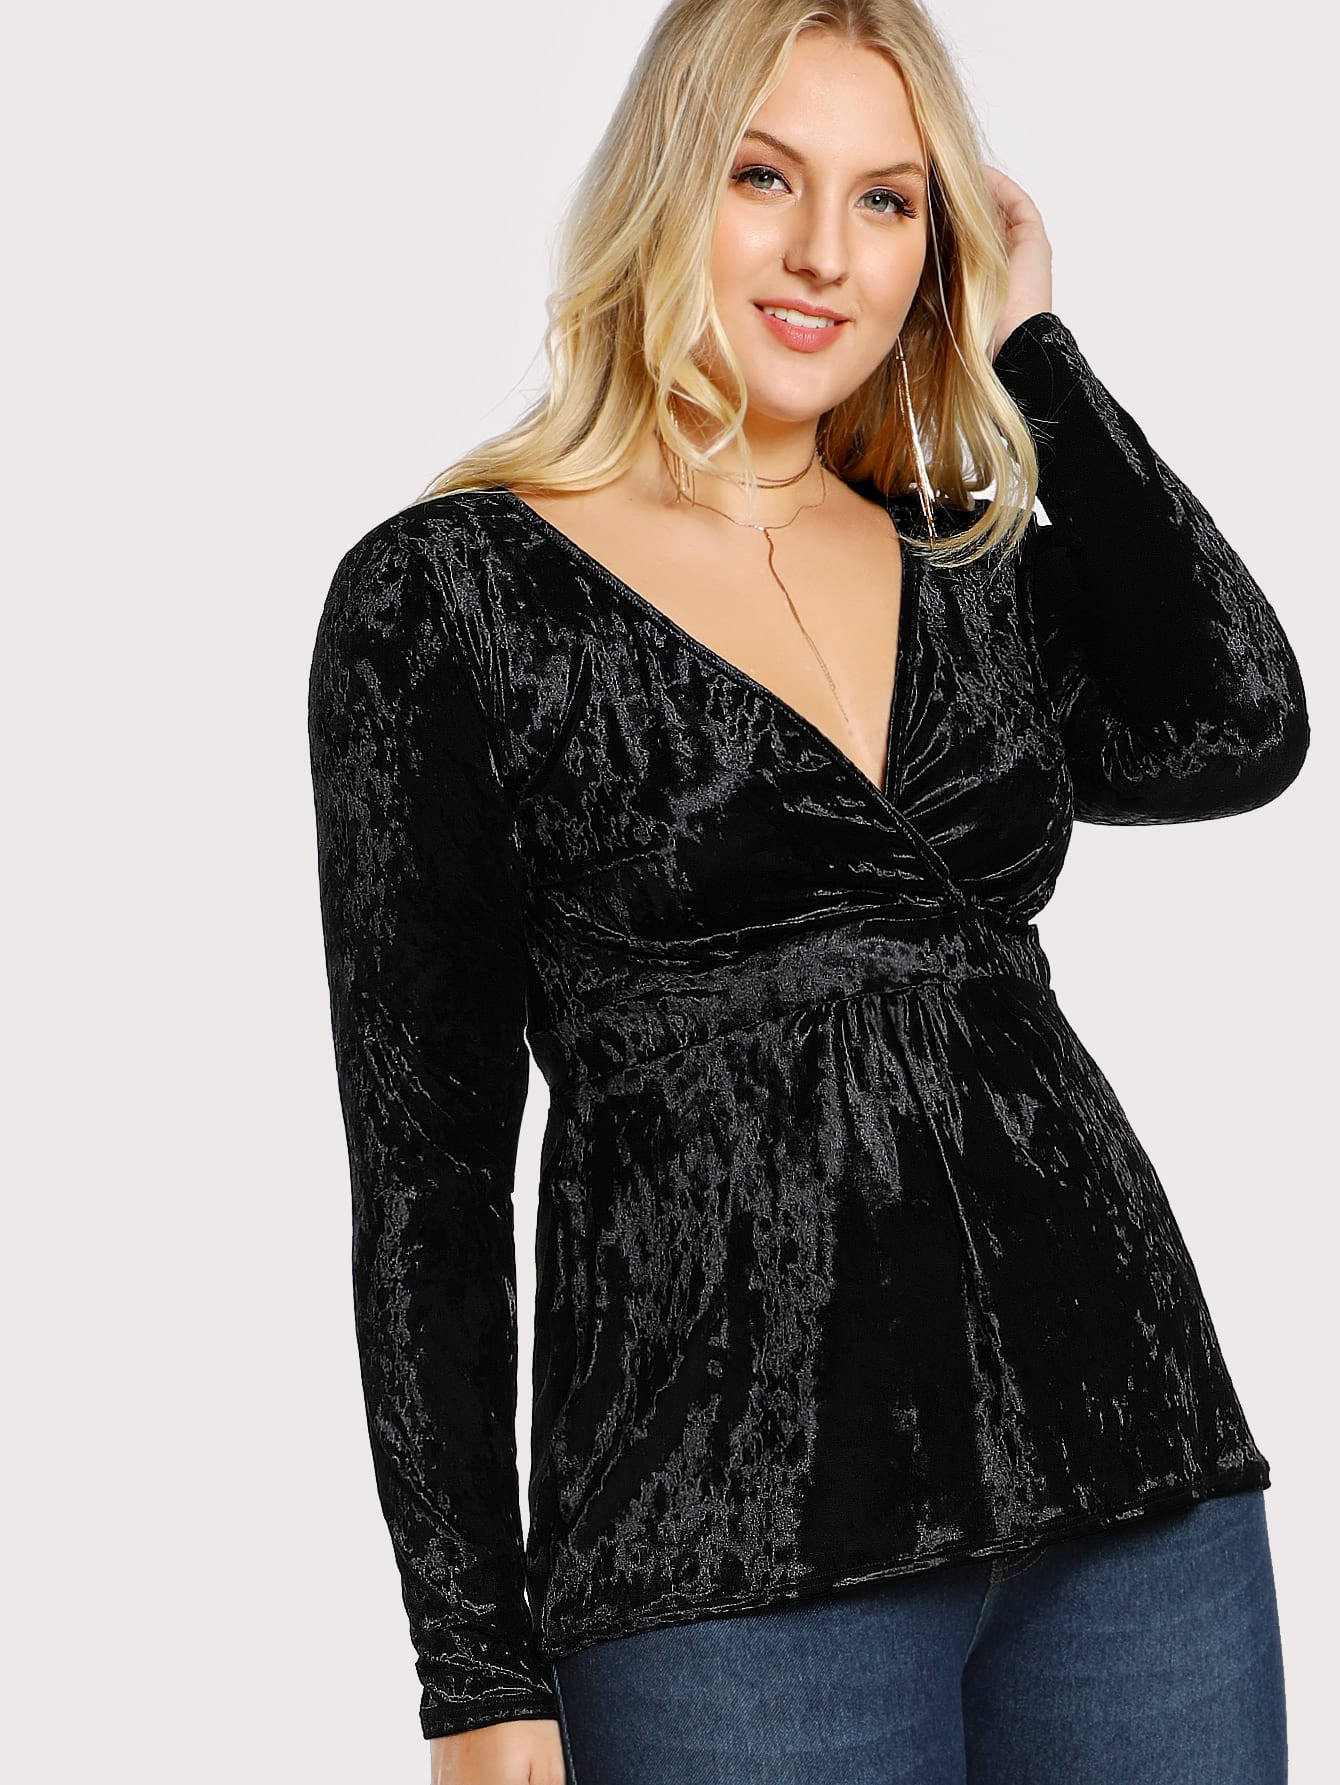 Surplice Front Crushed Velvet Top